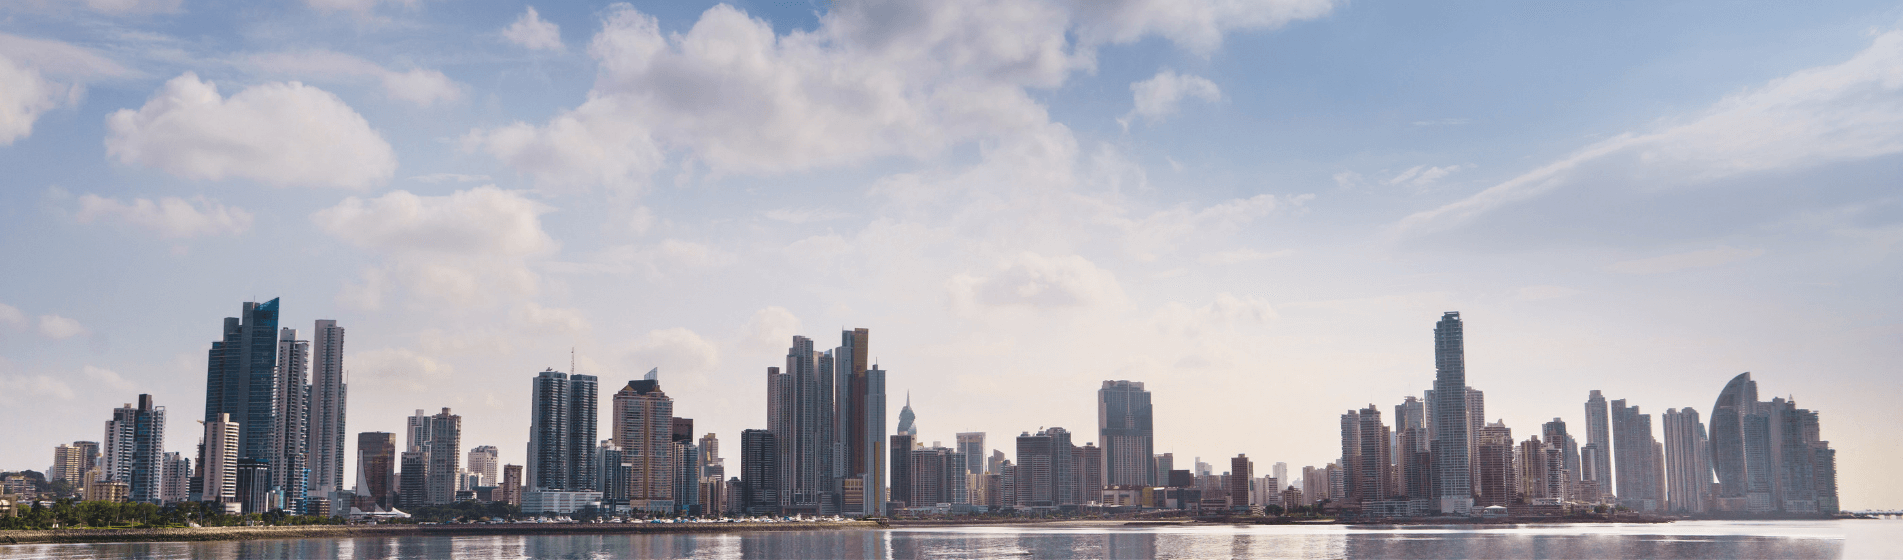 Header Image Panama City Skyline